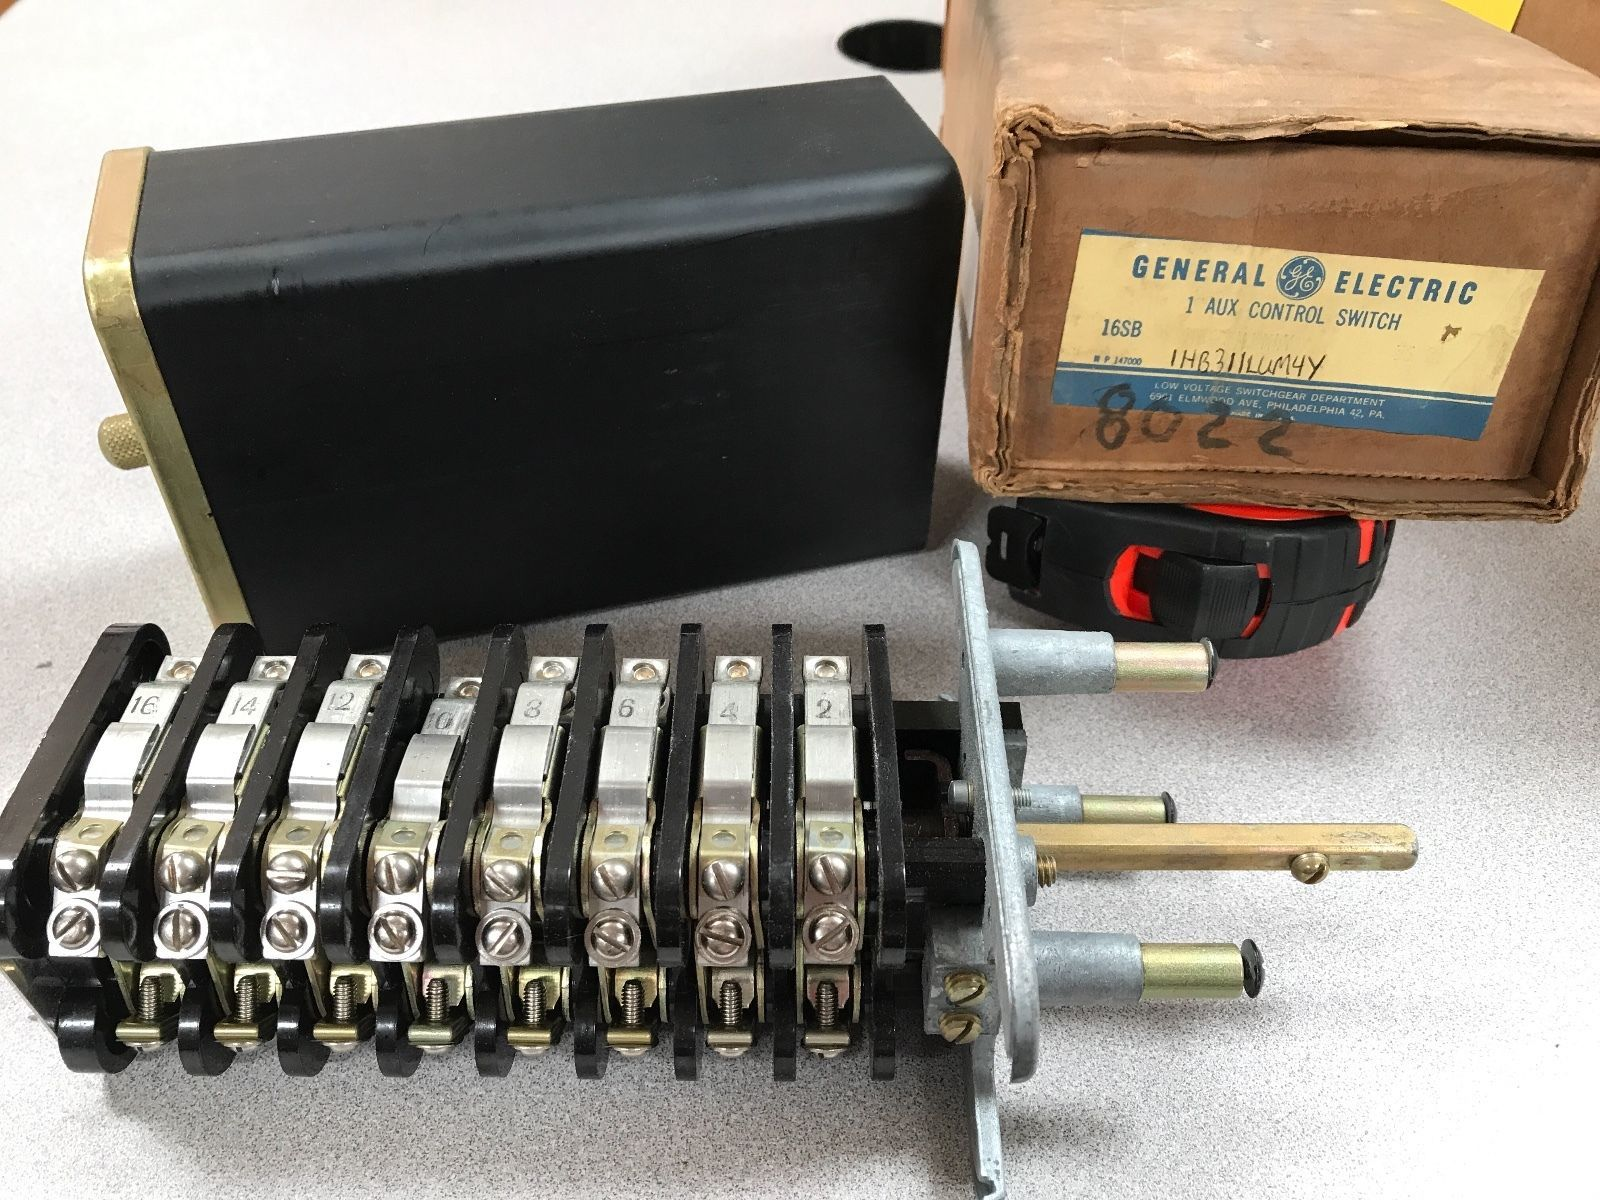 Primary image for General Electric GE Type SB-1 Aux Control Switch 16SB - 1HB311LUM4Y 3 positions